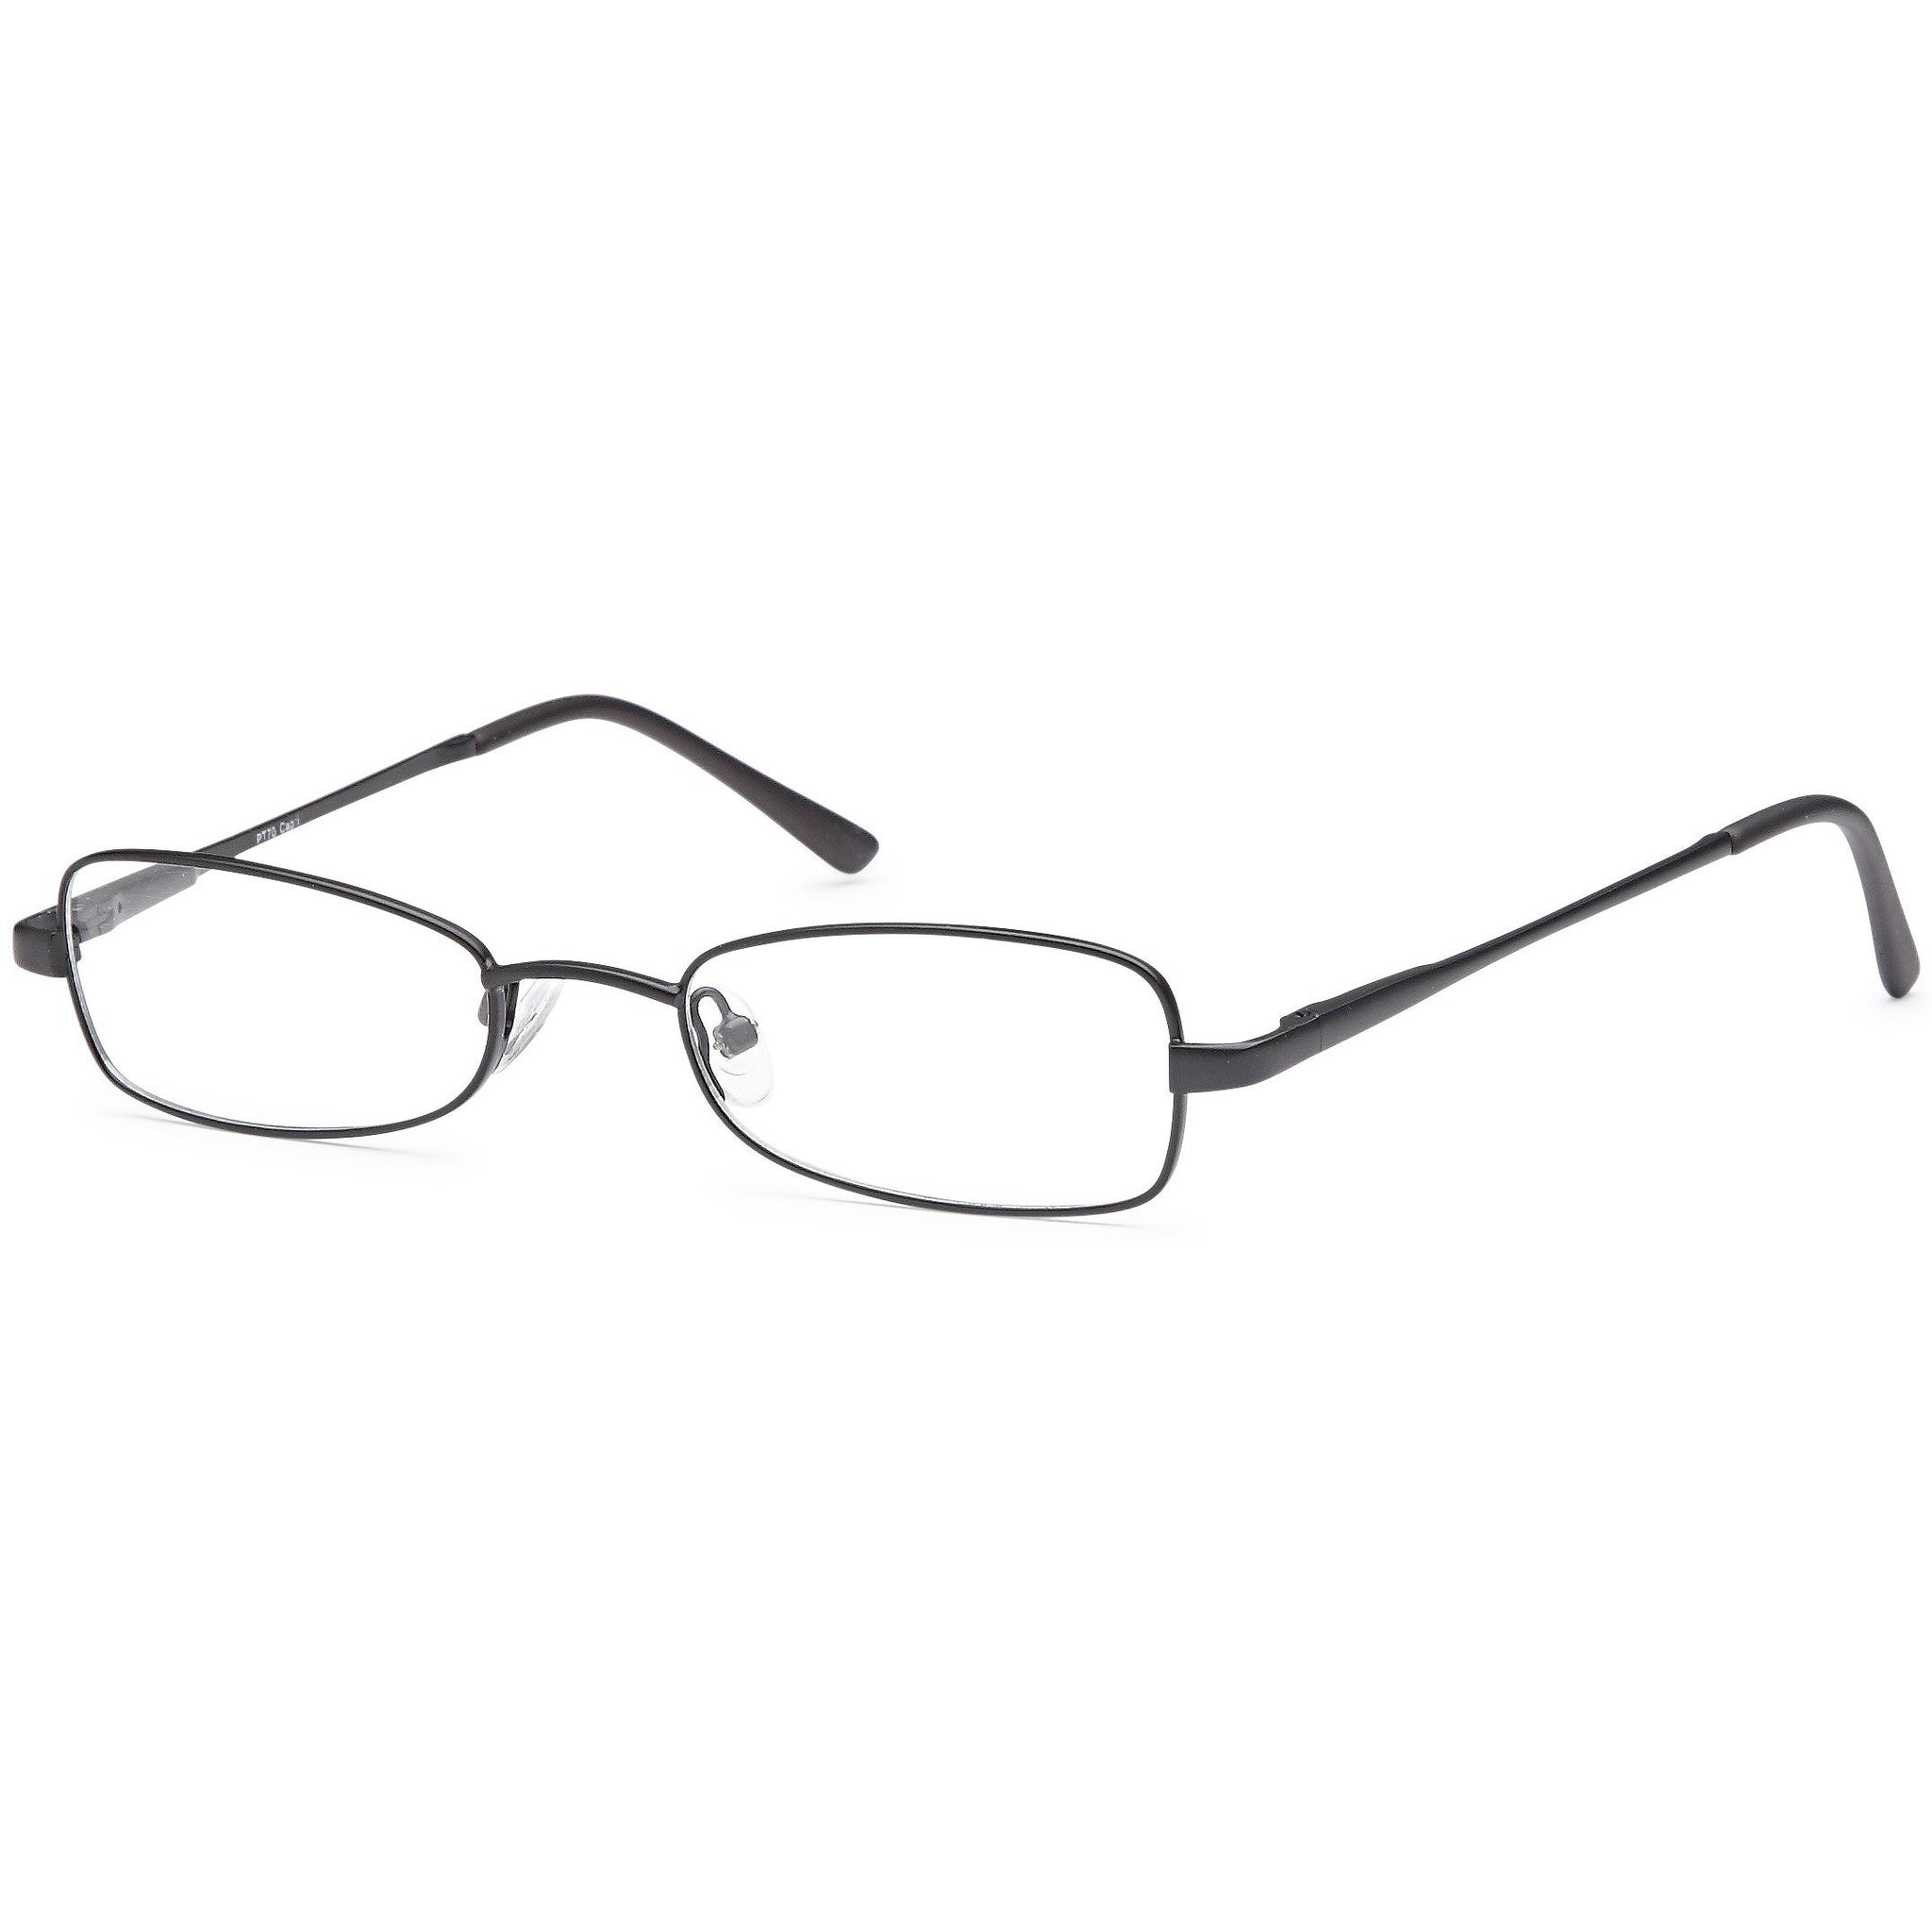 Appleree Prescription Glasses PT 70 Eyeglasses Frame